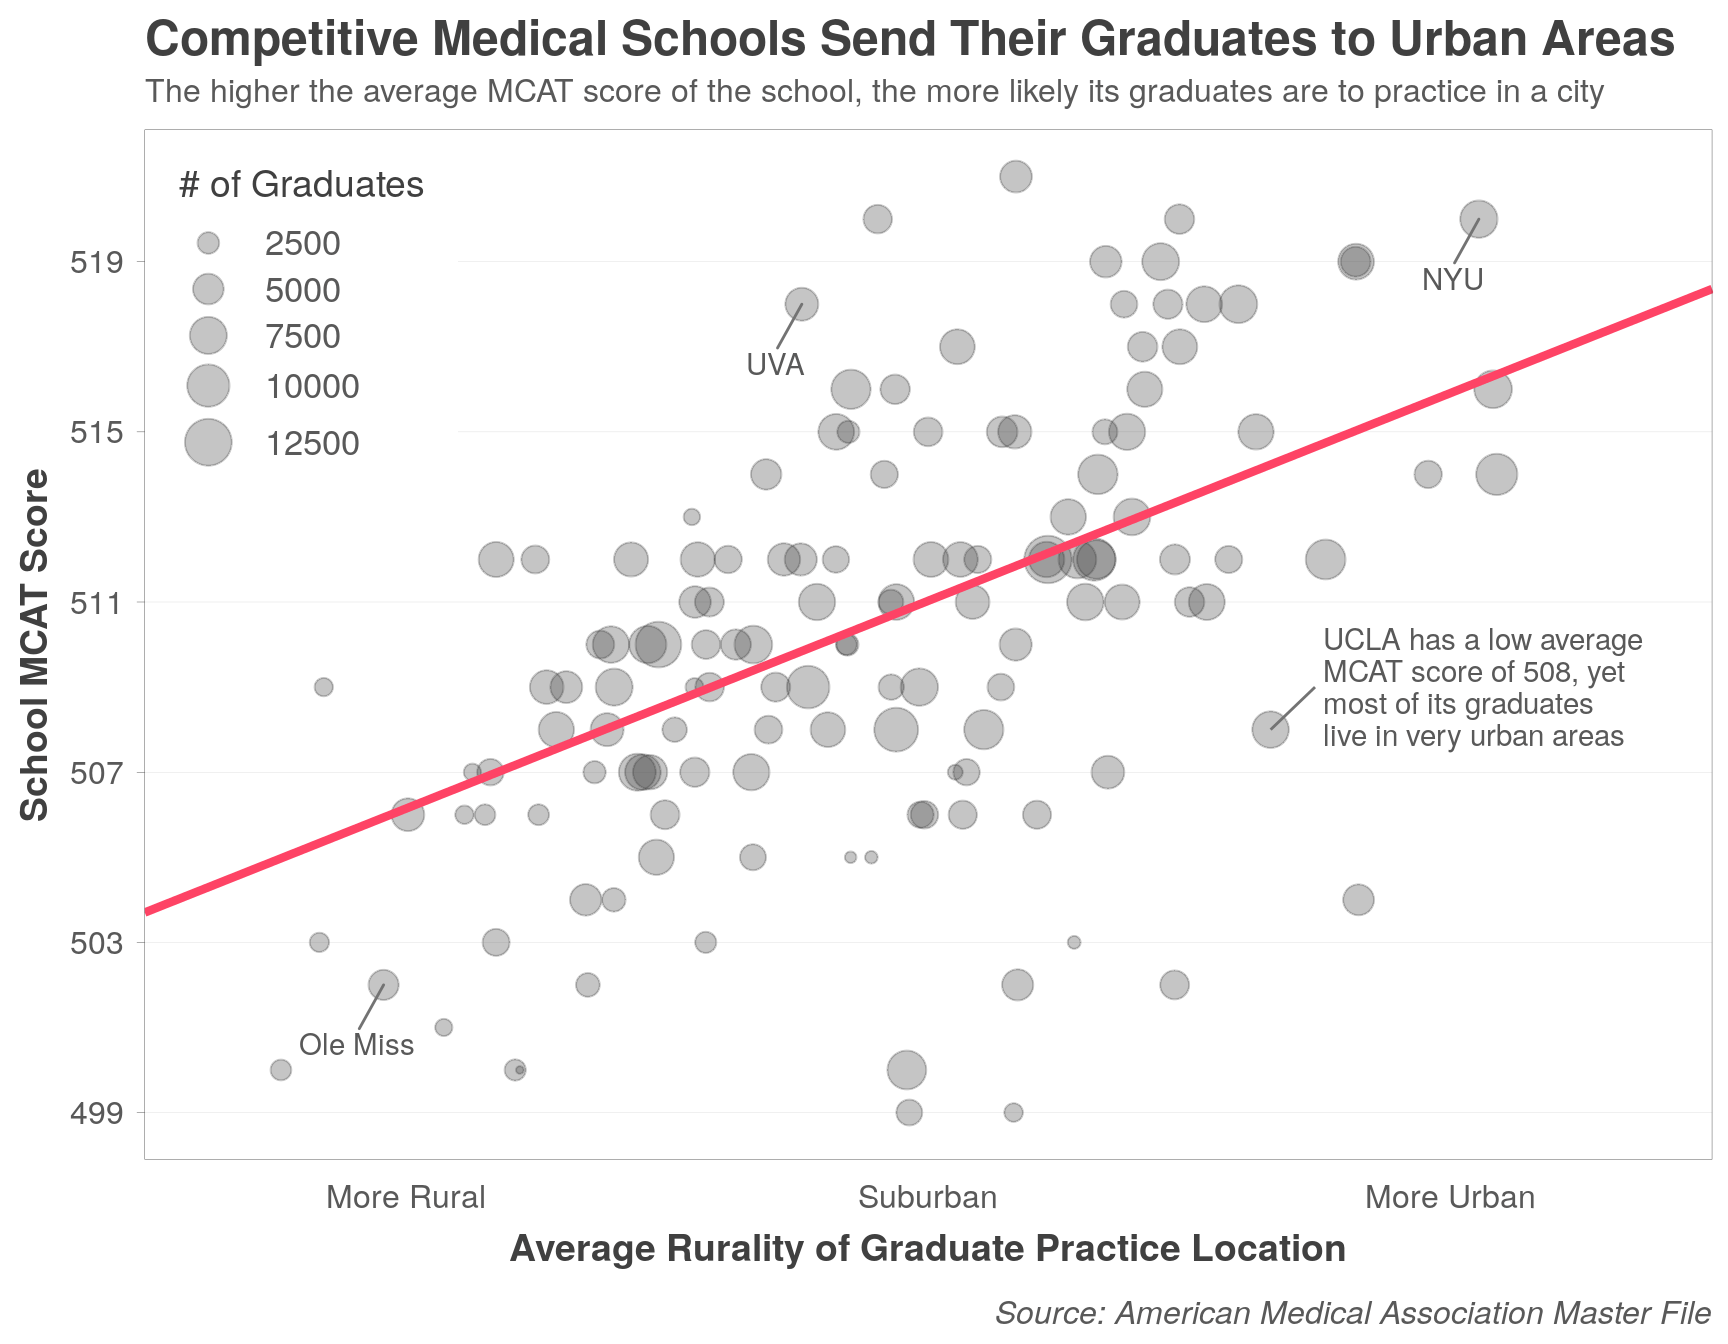 Competitive medical schools send their graduates to urban areas